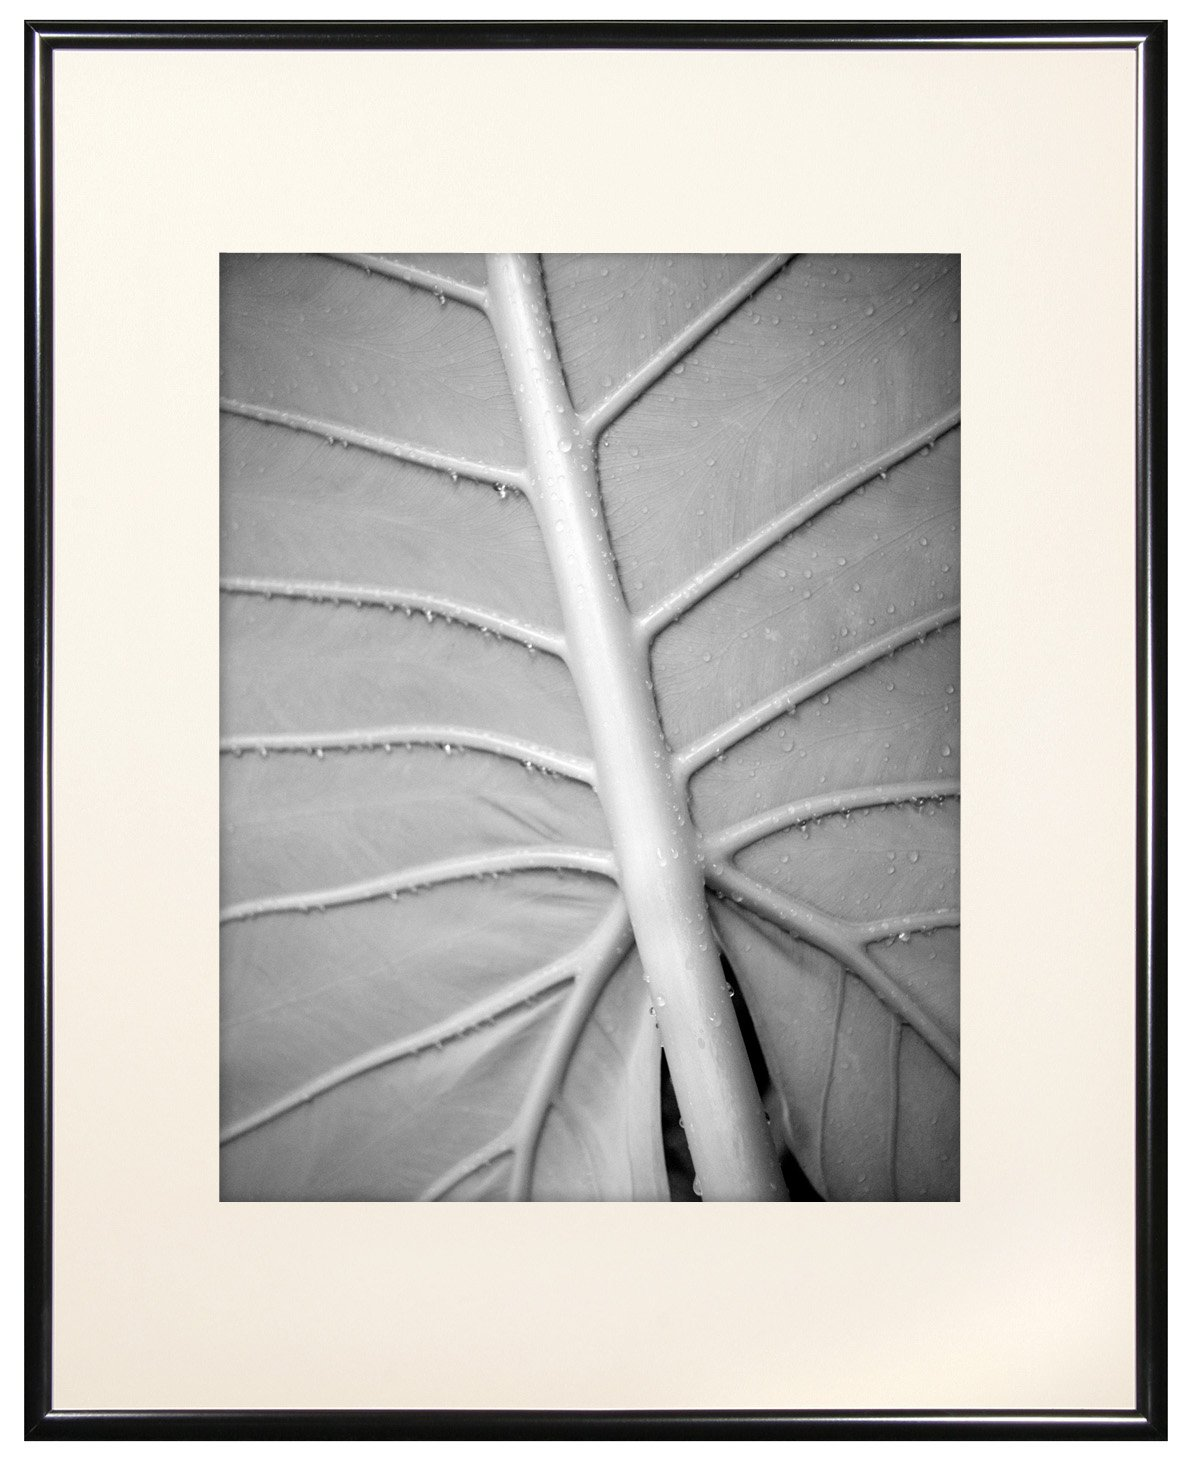 MCS 11x14 Inch Gallery Aluminum Frame with 8x10 Inch Mat Opening, Black (44143) MCS Industries Inc.